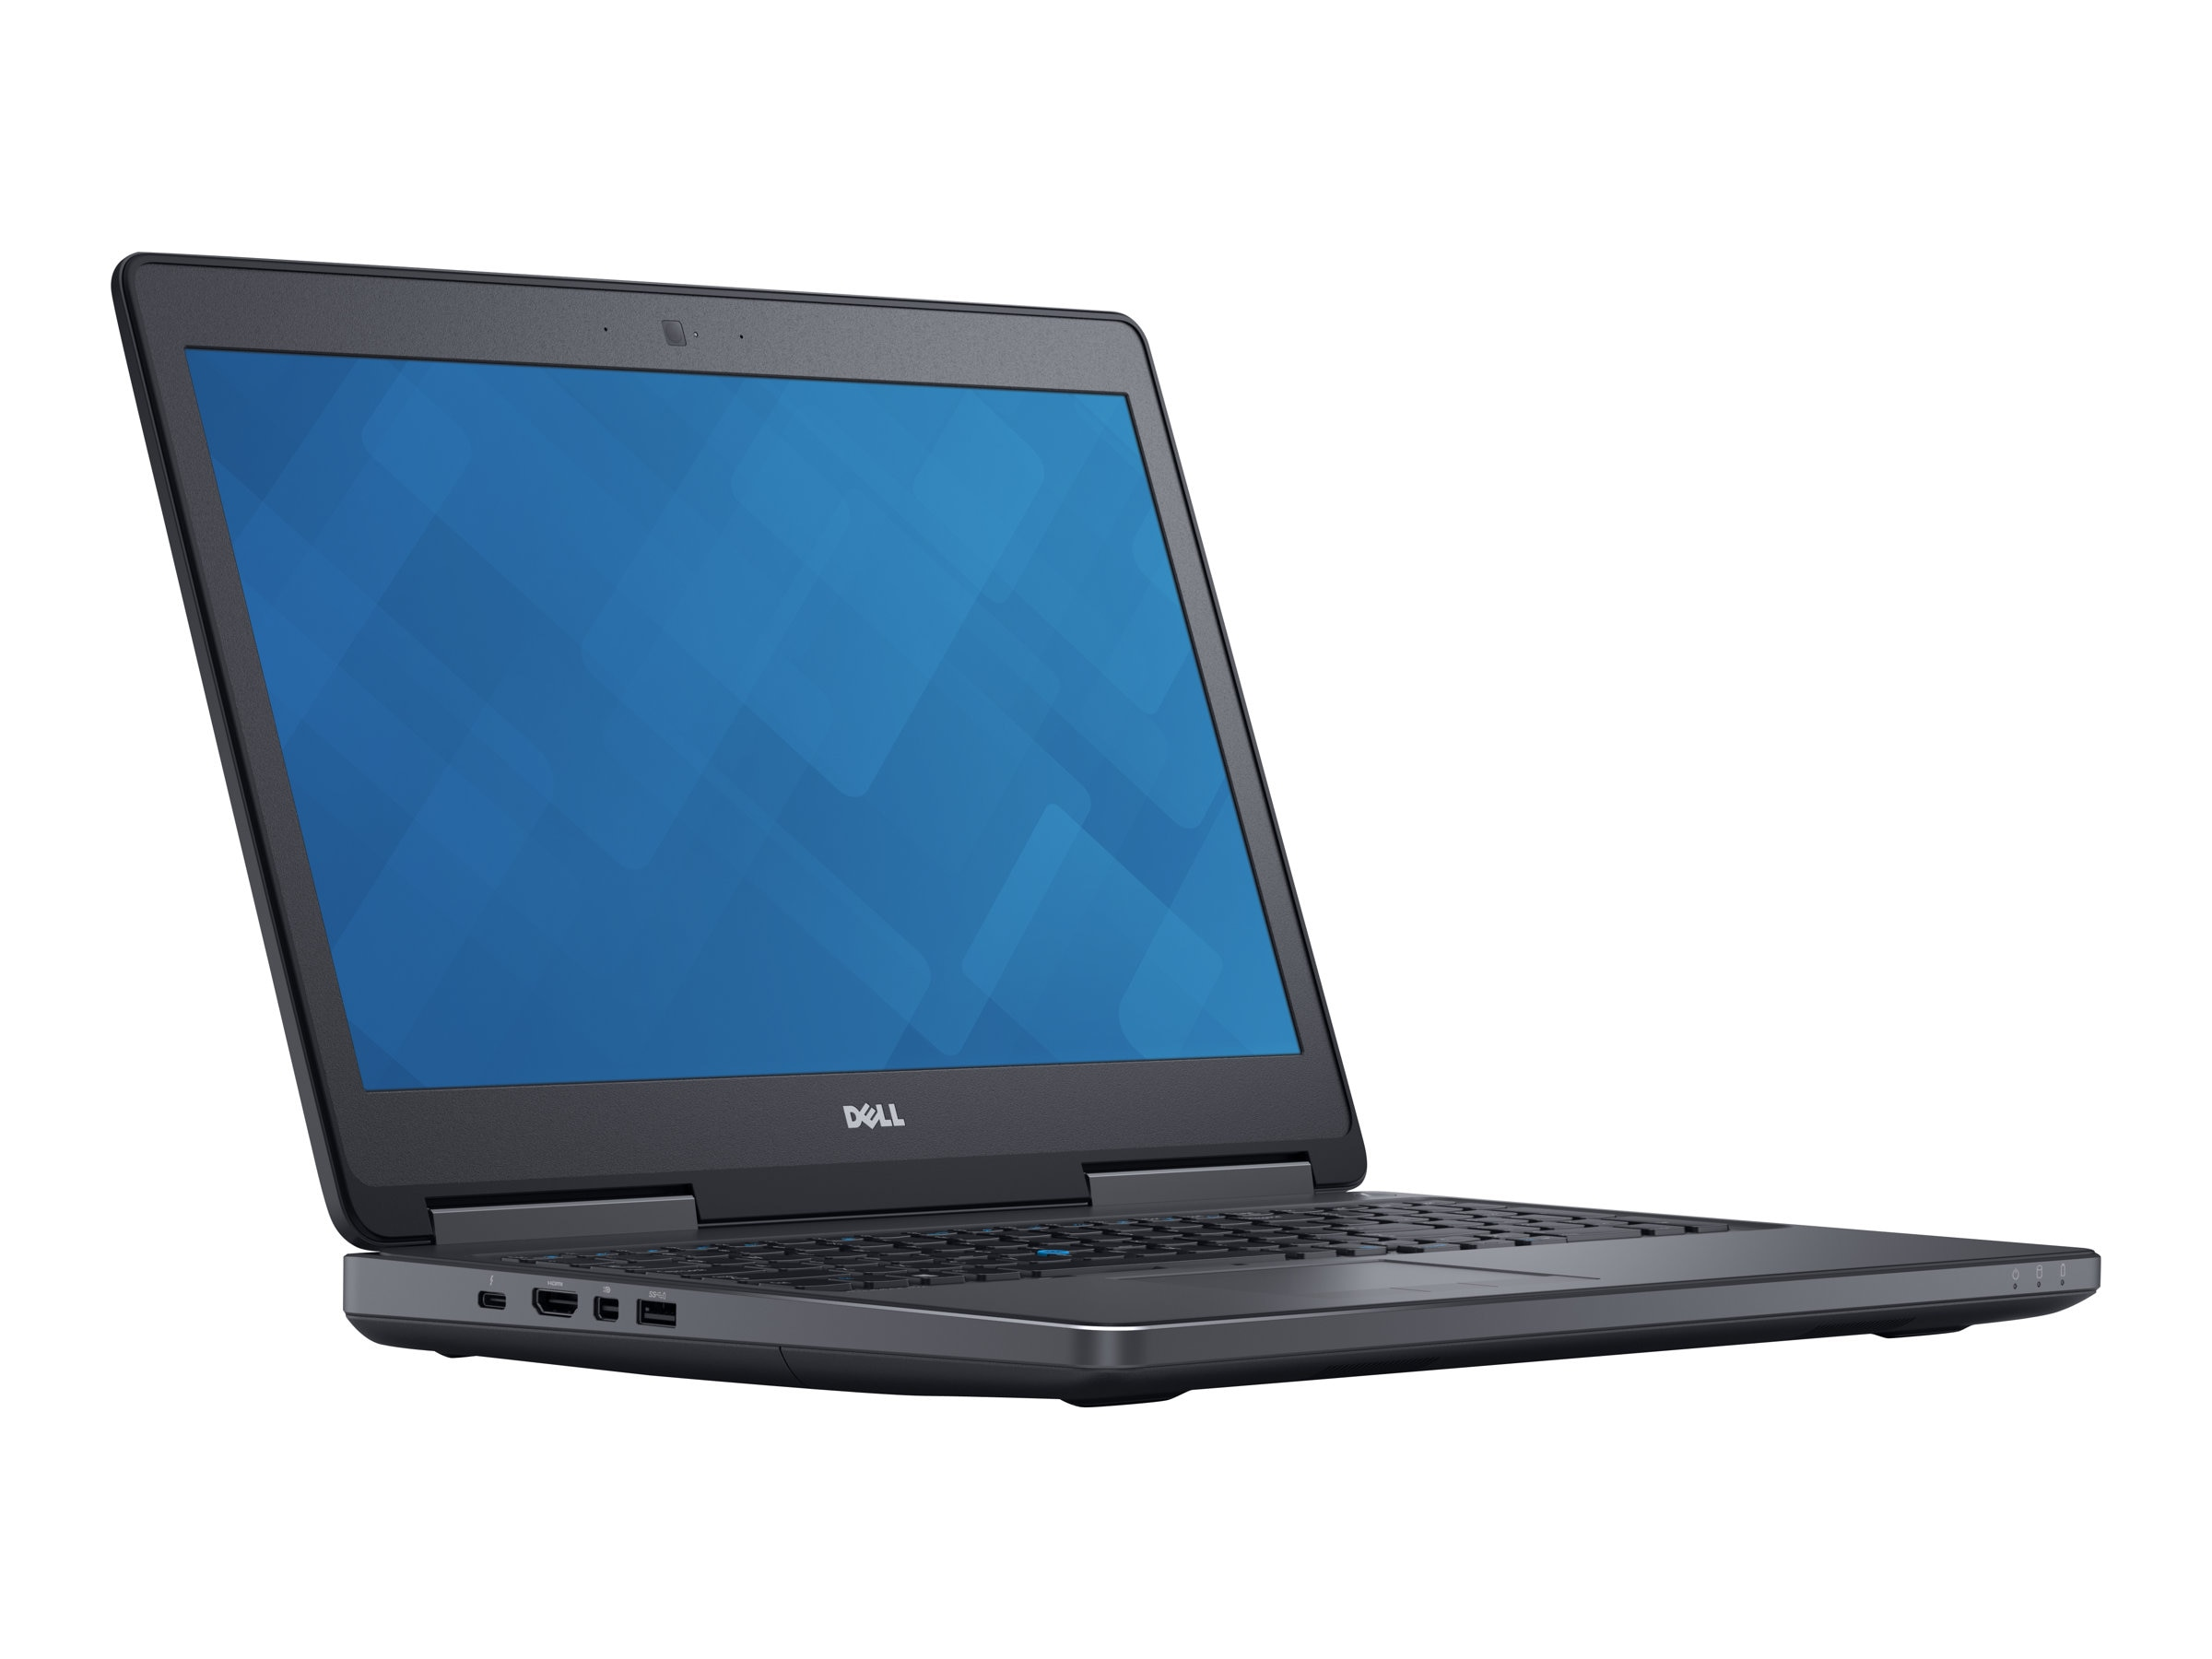 Dell Precision 7510 Core i7-6820HQ 2.7GHz 8GB 500GB M1000M ac BT WC 6C 15.6 FHD W7P64-W10P, JHWYC